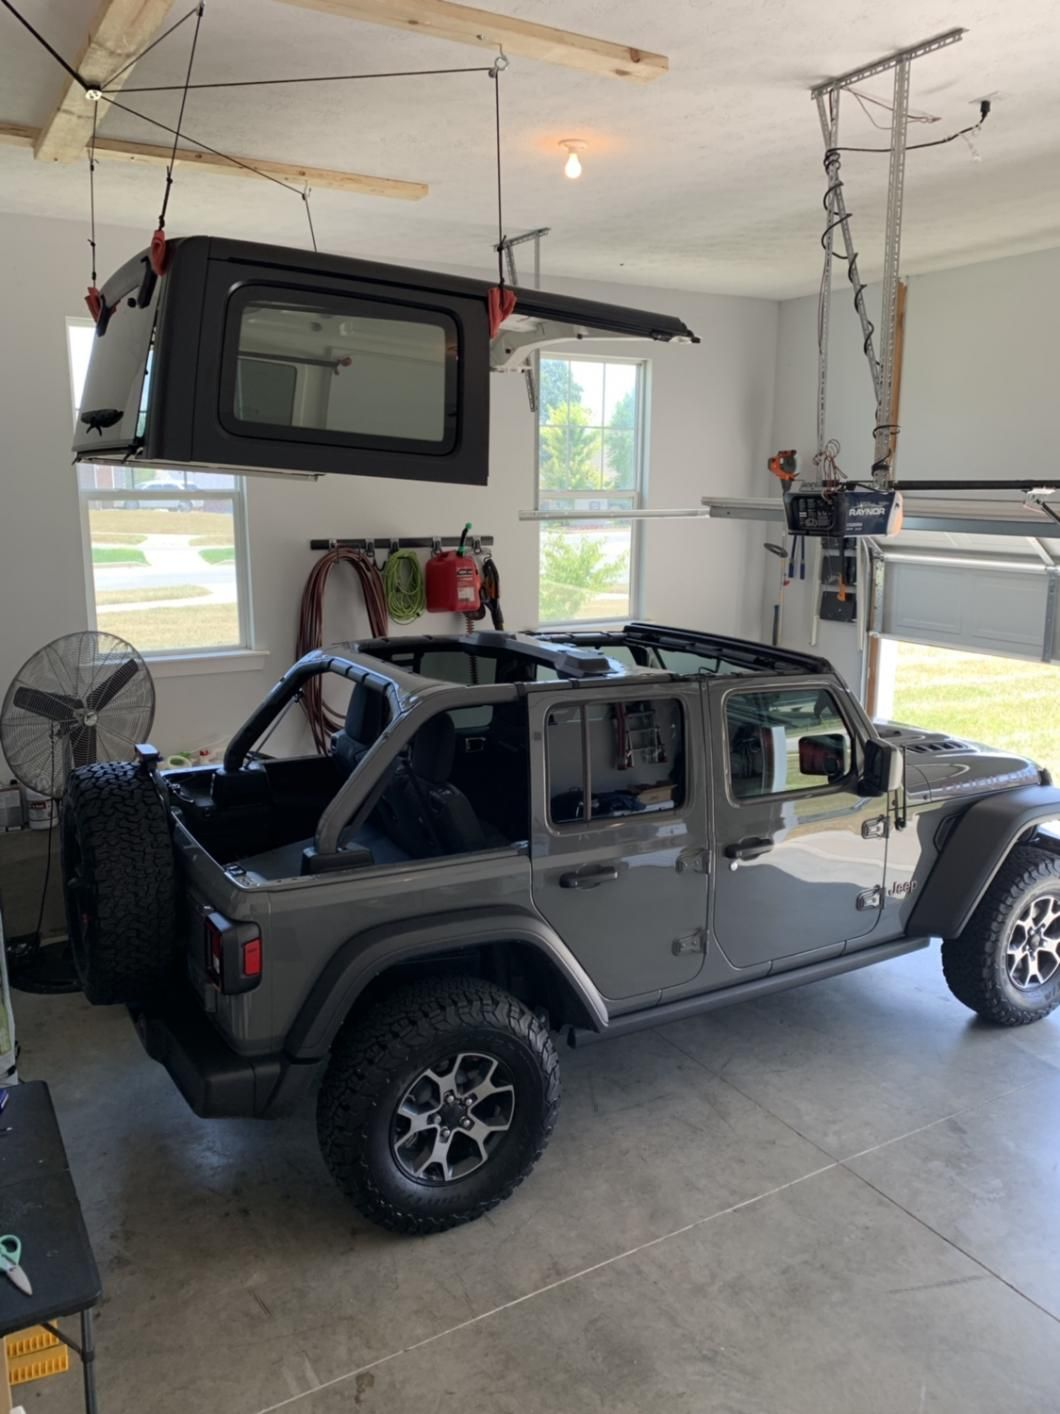 Harken Jeep Wrangler Hoister Garage Storage 4 Point Lift System 7803 Jeep In 2020 Custom Jeep Wrangler Dream Cars Jeep Jeep Wrangler Tops